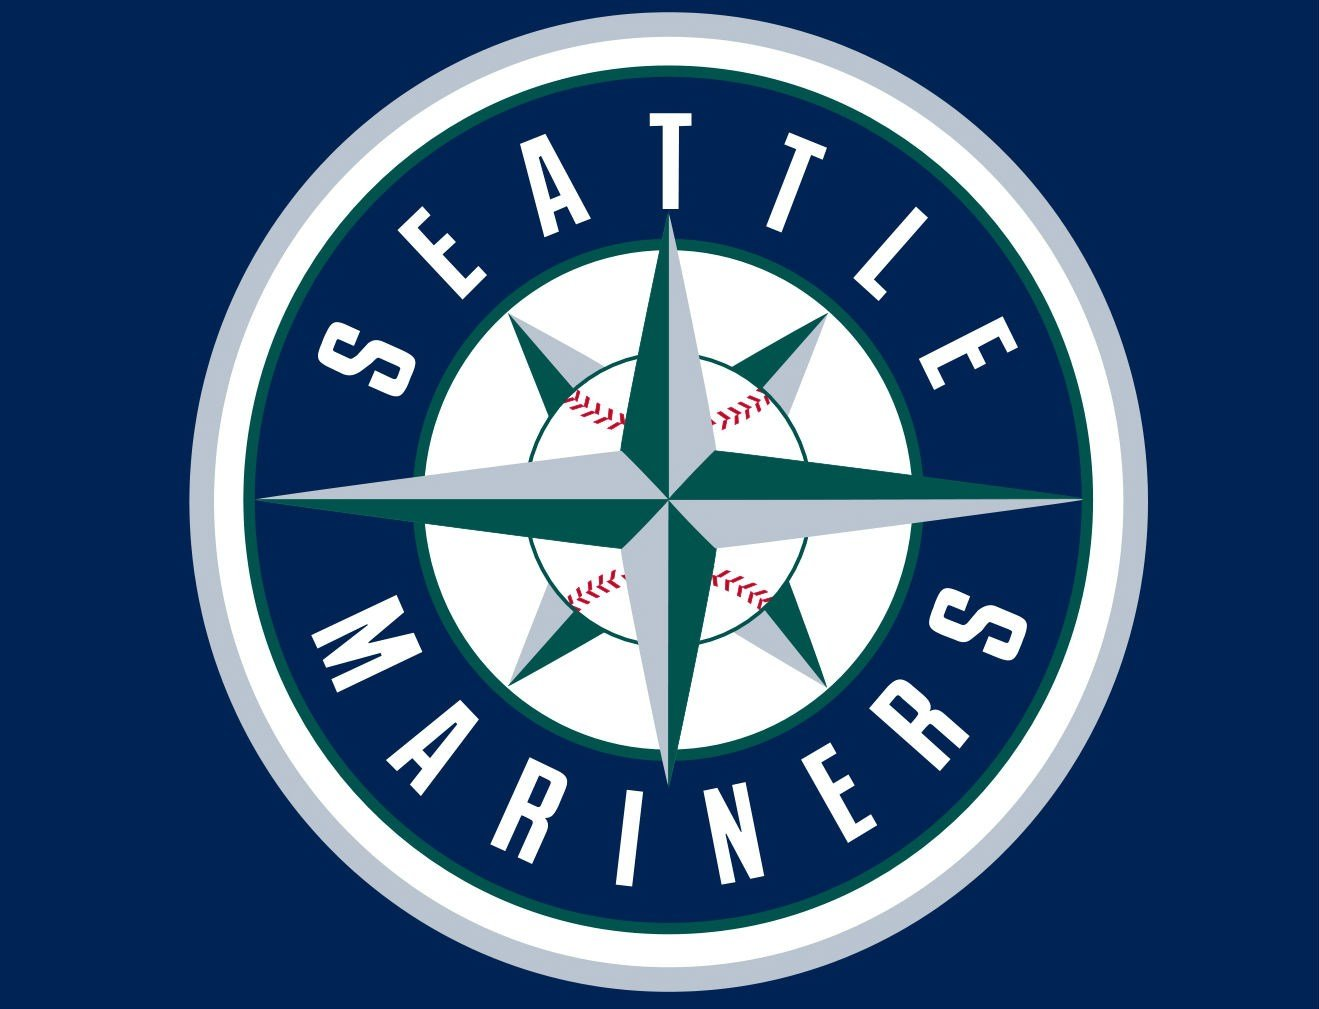 Mariners have now won nine of their last 10 games